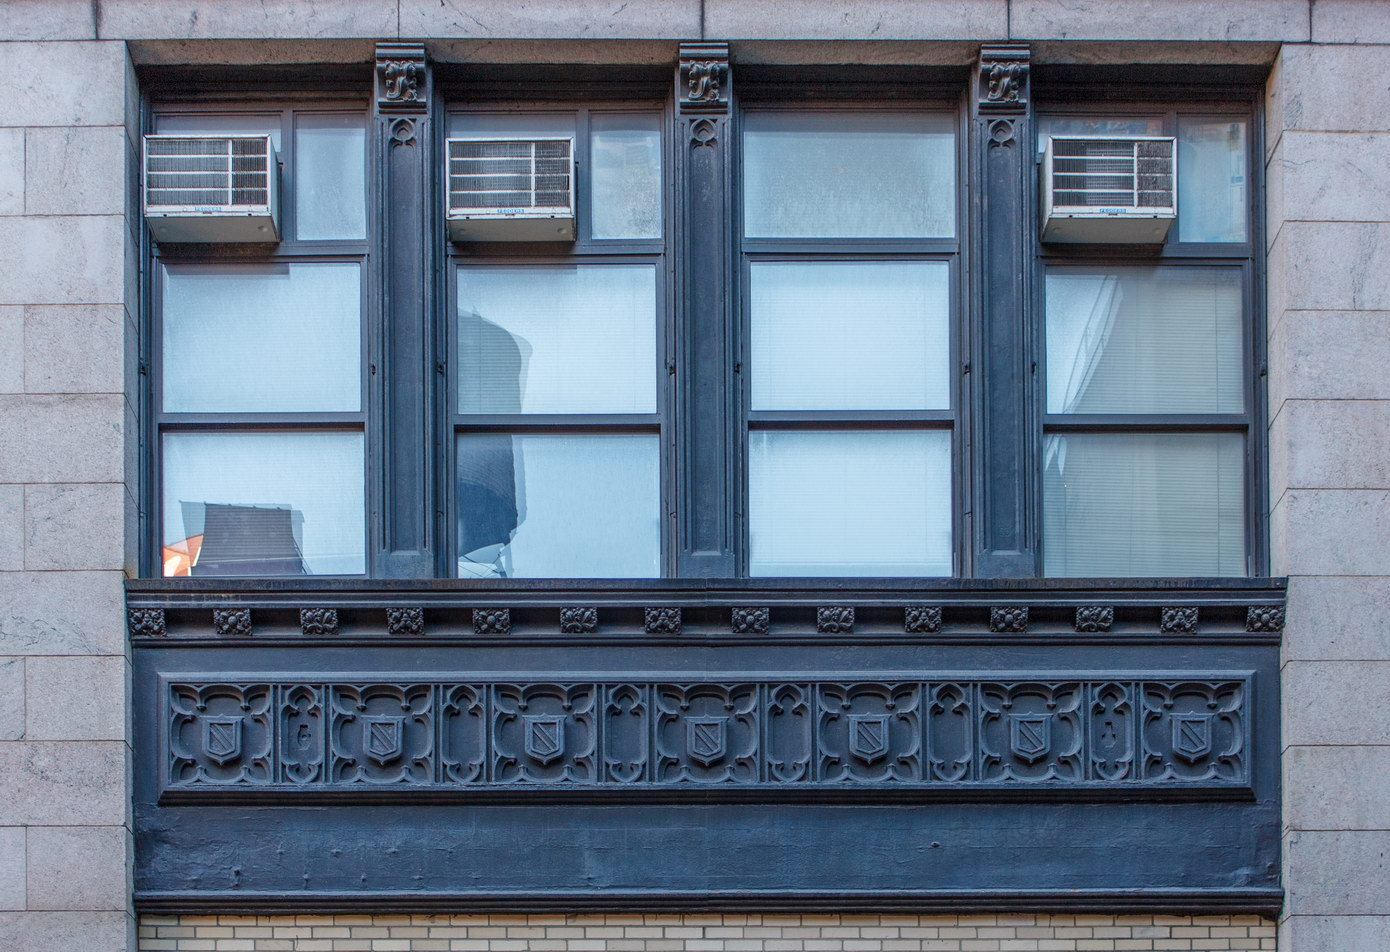 Second floor window detail.